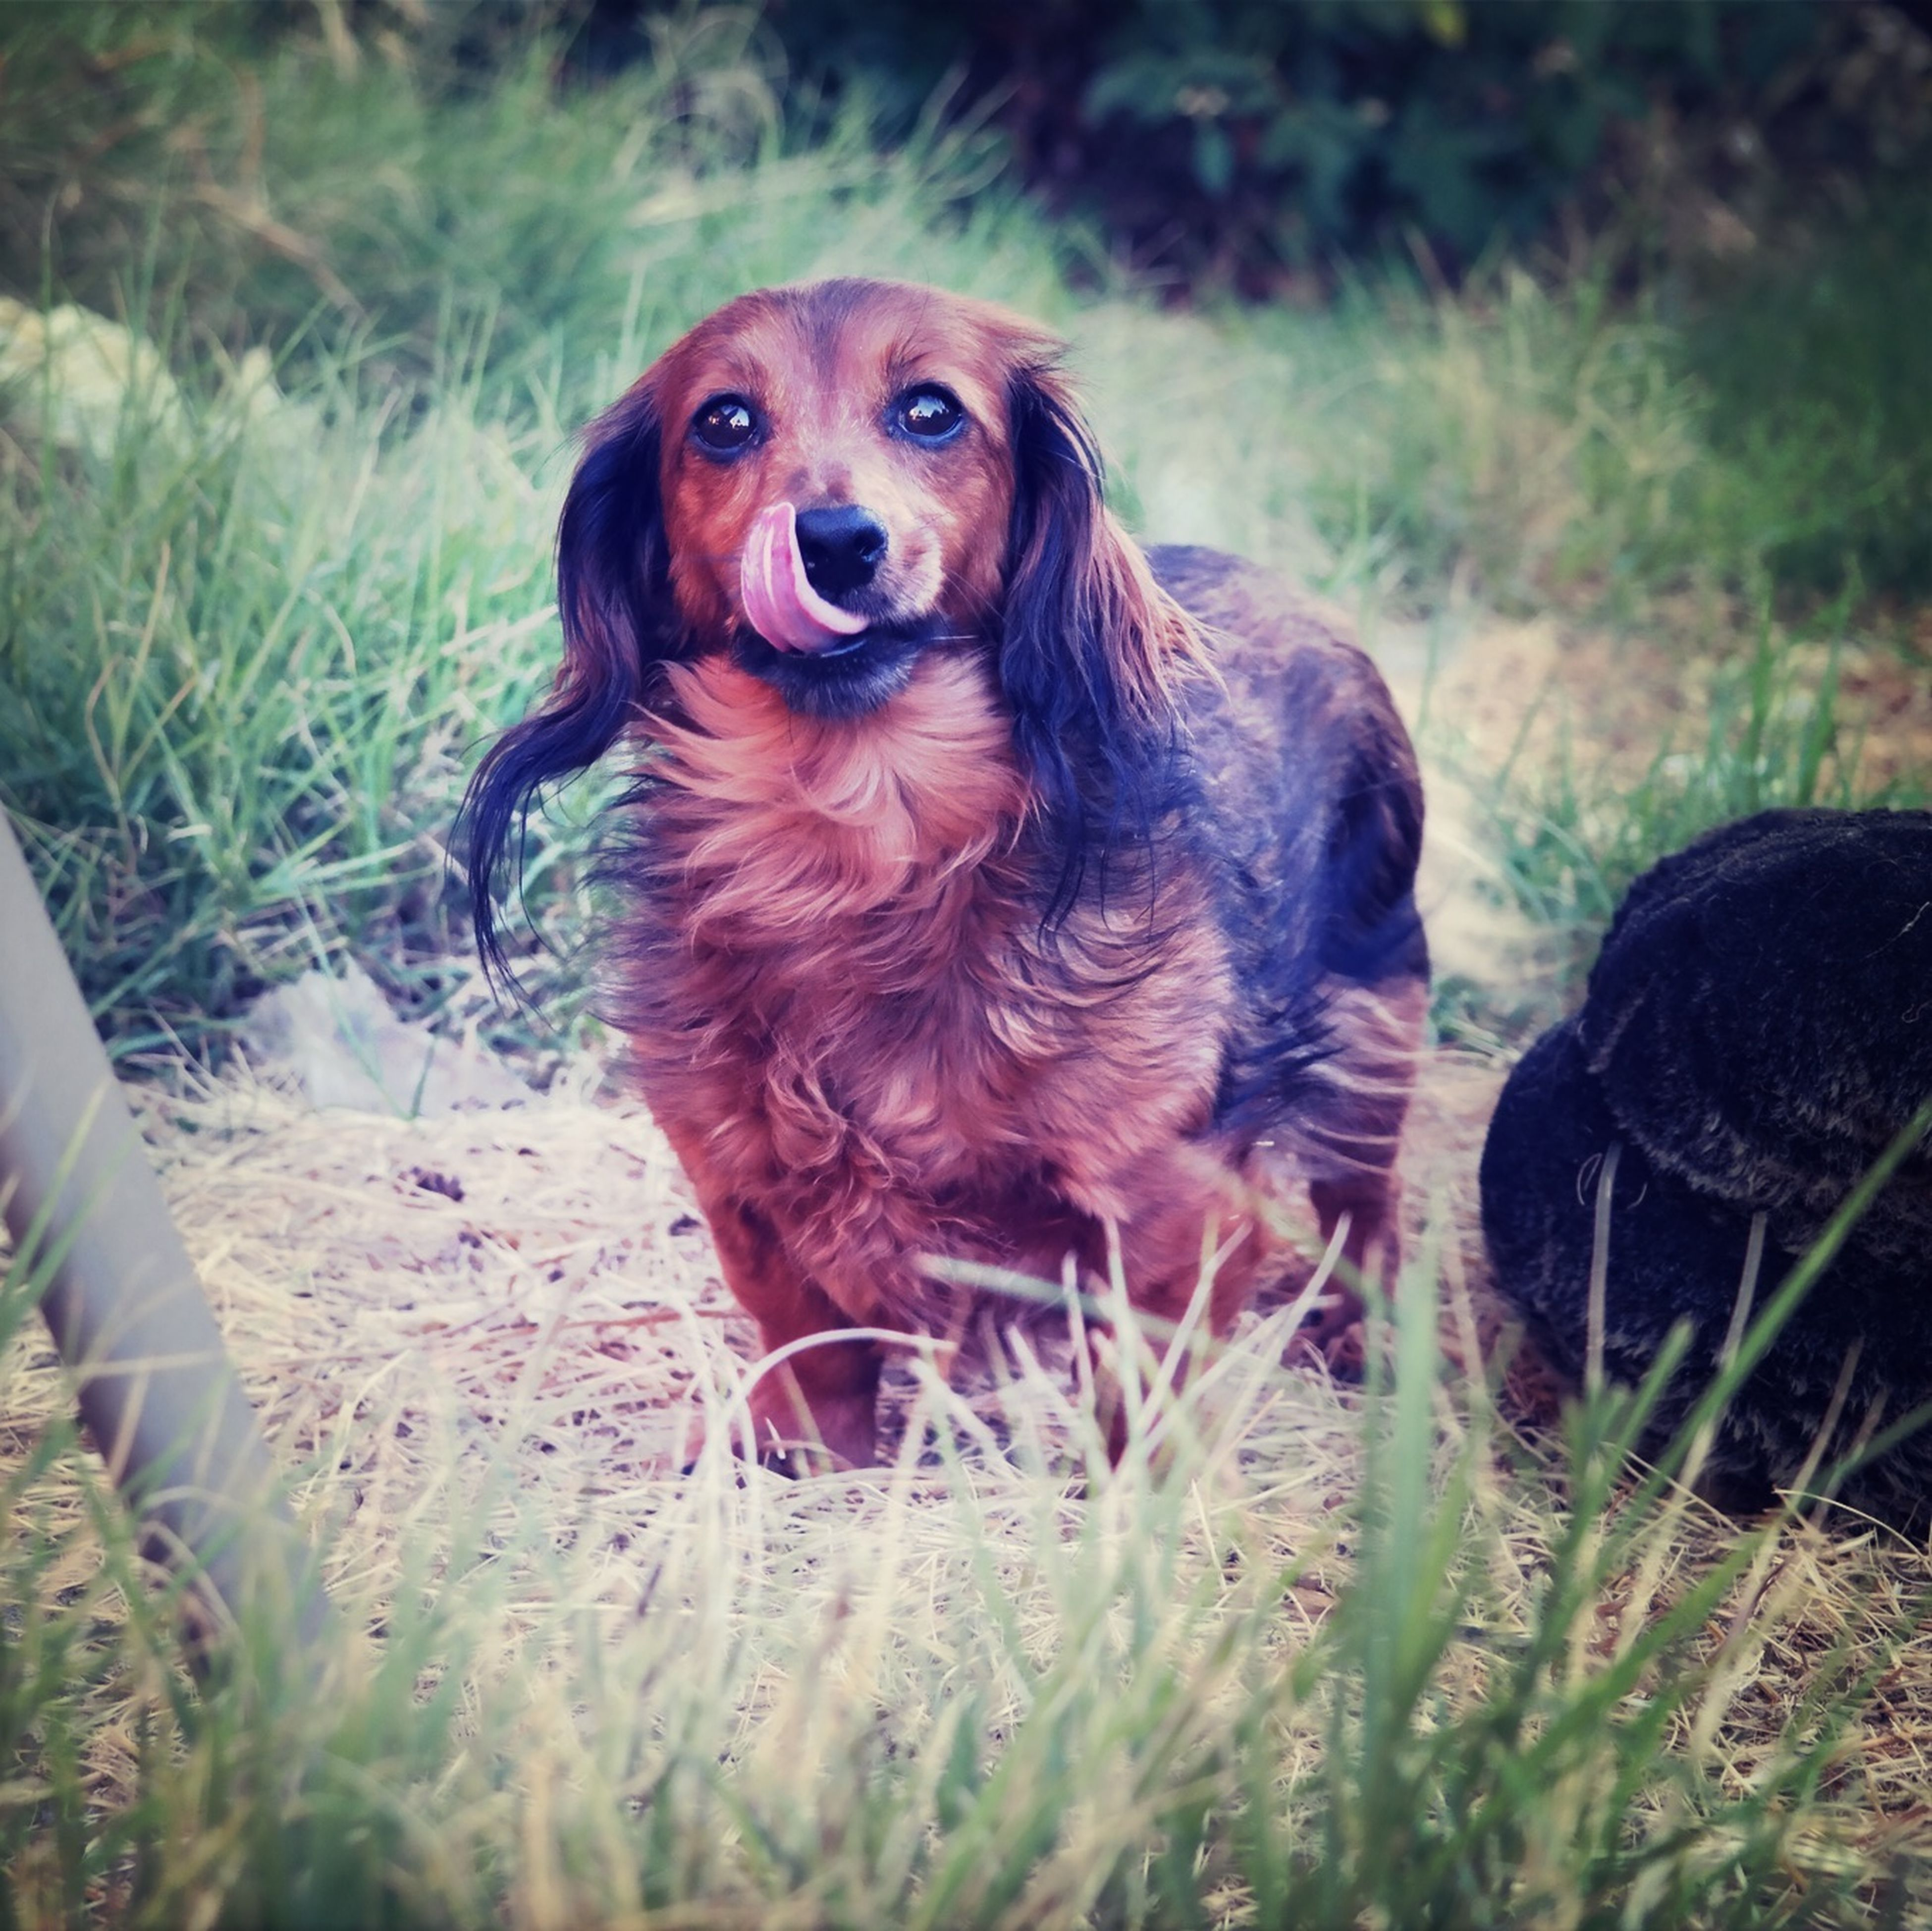 animal themes, mammal, one animal, domestic animals, dog, portrait, brown, grass, animal head, animals in the wild, nature, field, pets, looking at camera, outdoors, plant, wildlife, day, no people, two animals